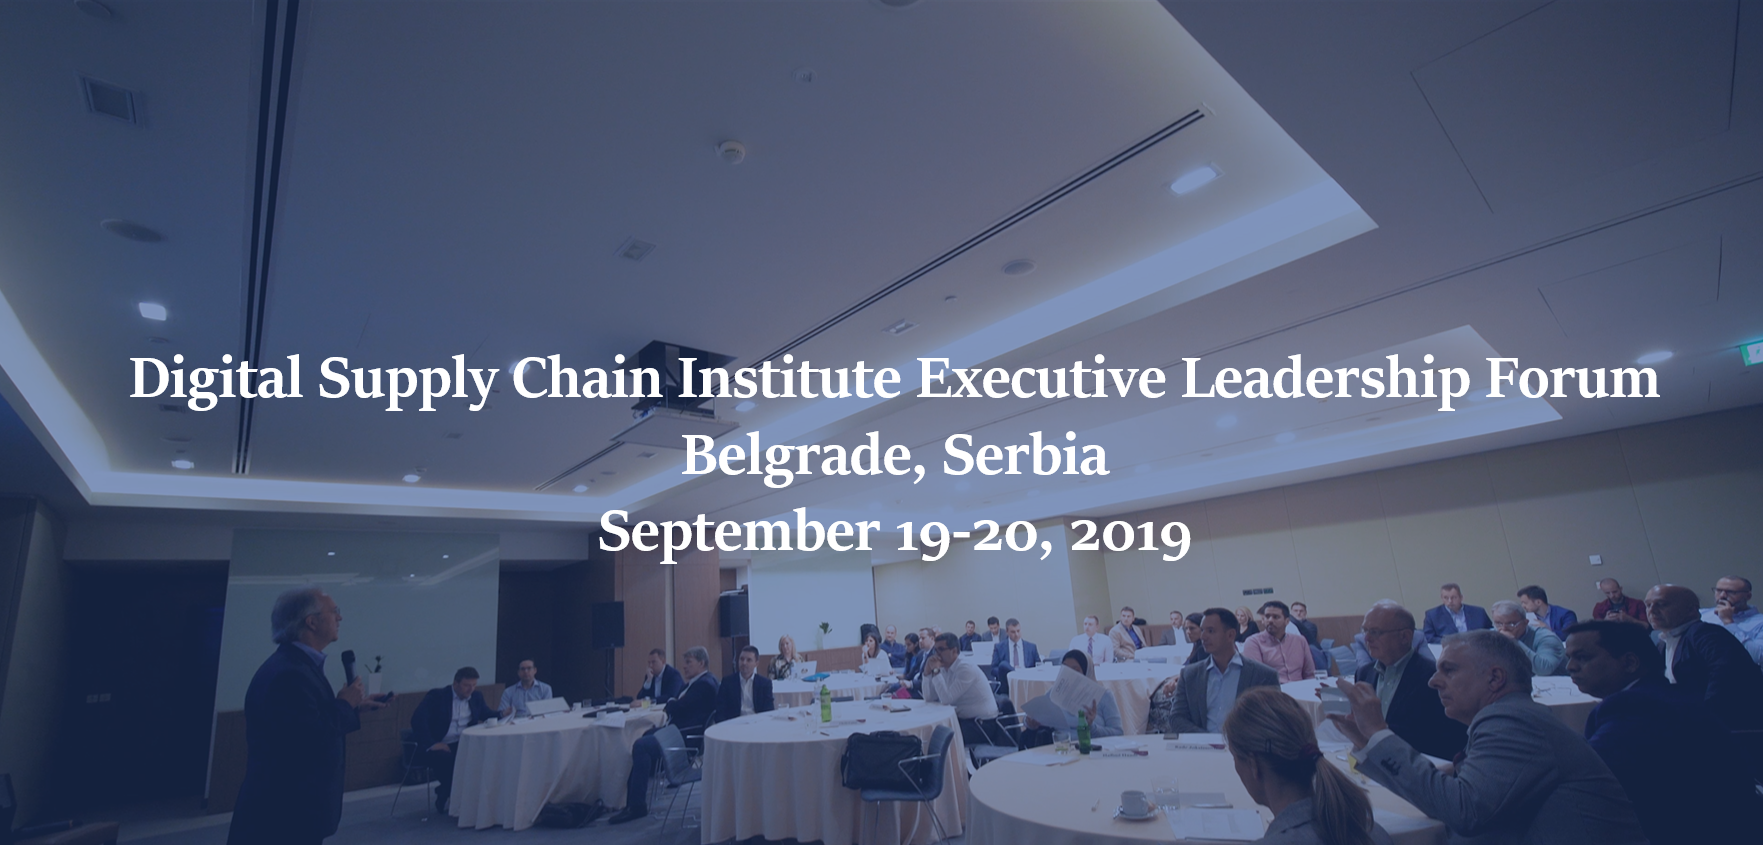 See how the DSCI collaborates with supply chain leaders from across the world